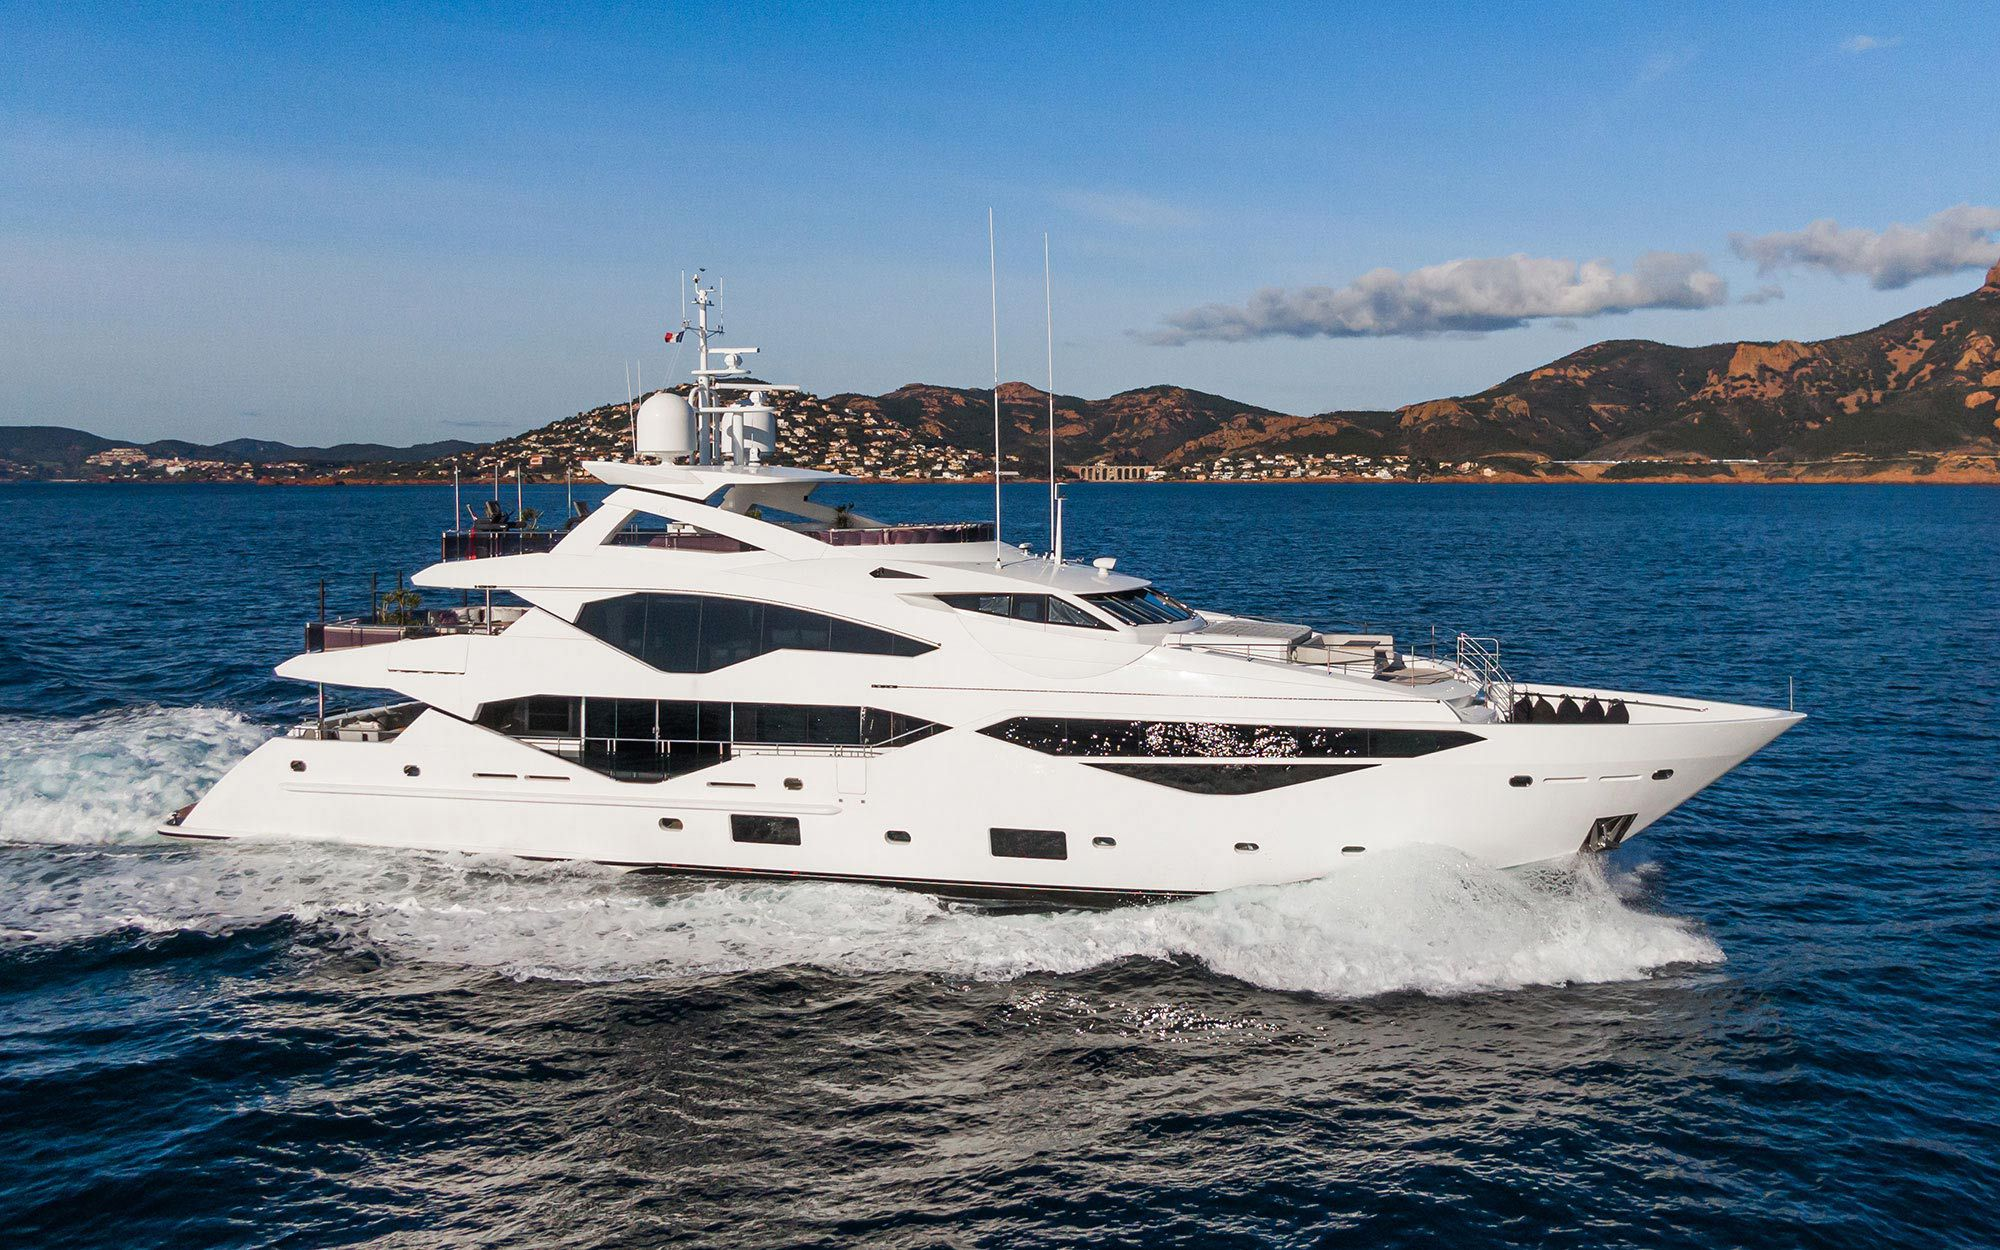 The Sunseeker 131 <i>Angelus</i> accommodates up to 12 guests in six staterooms. Asking price is about $22.7 million.